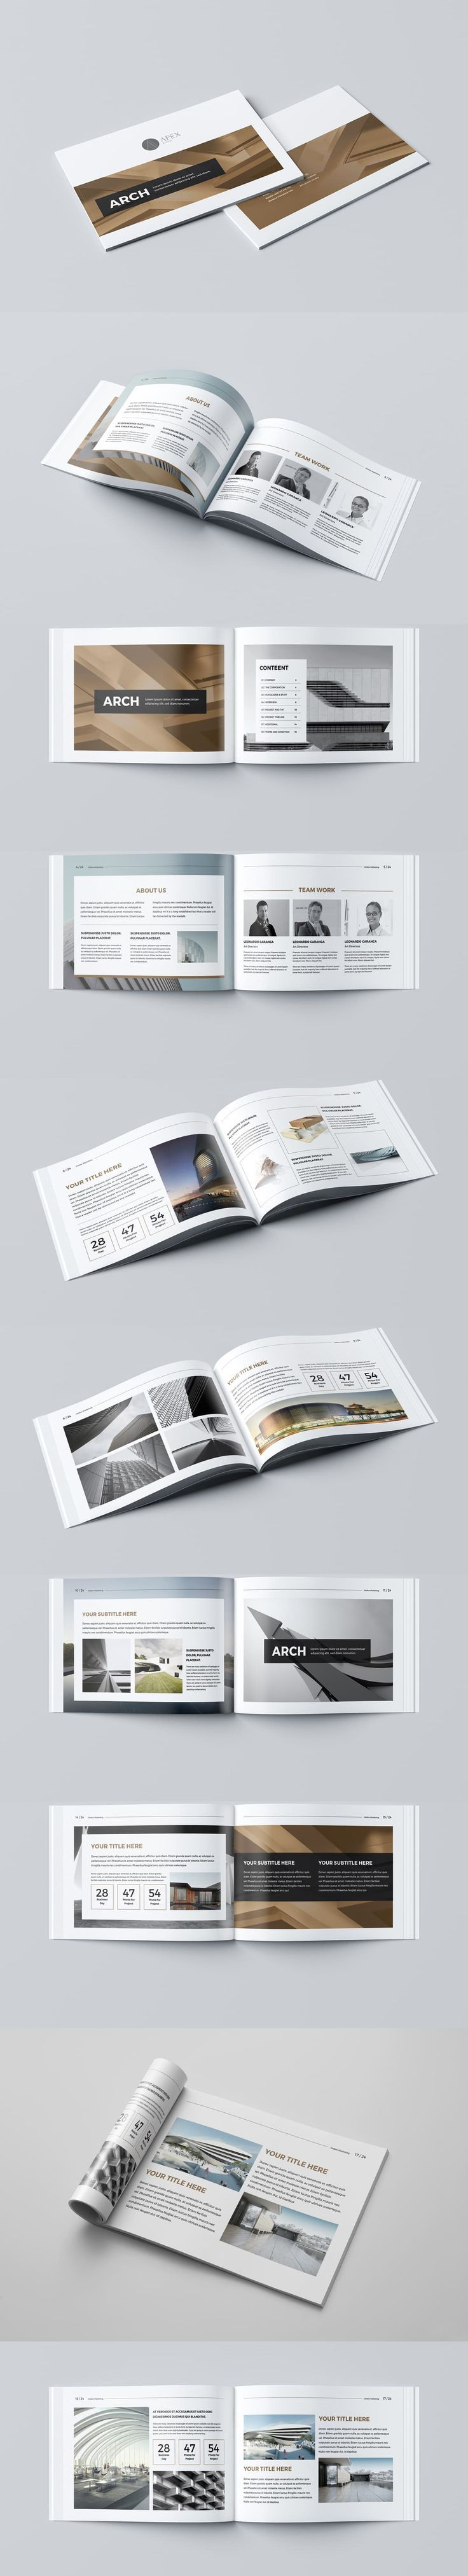 best images about design layout pinterest new modern architecture brochure template indesign indd pages #modernhomedesignlayout